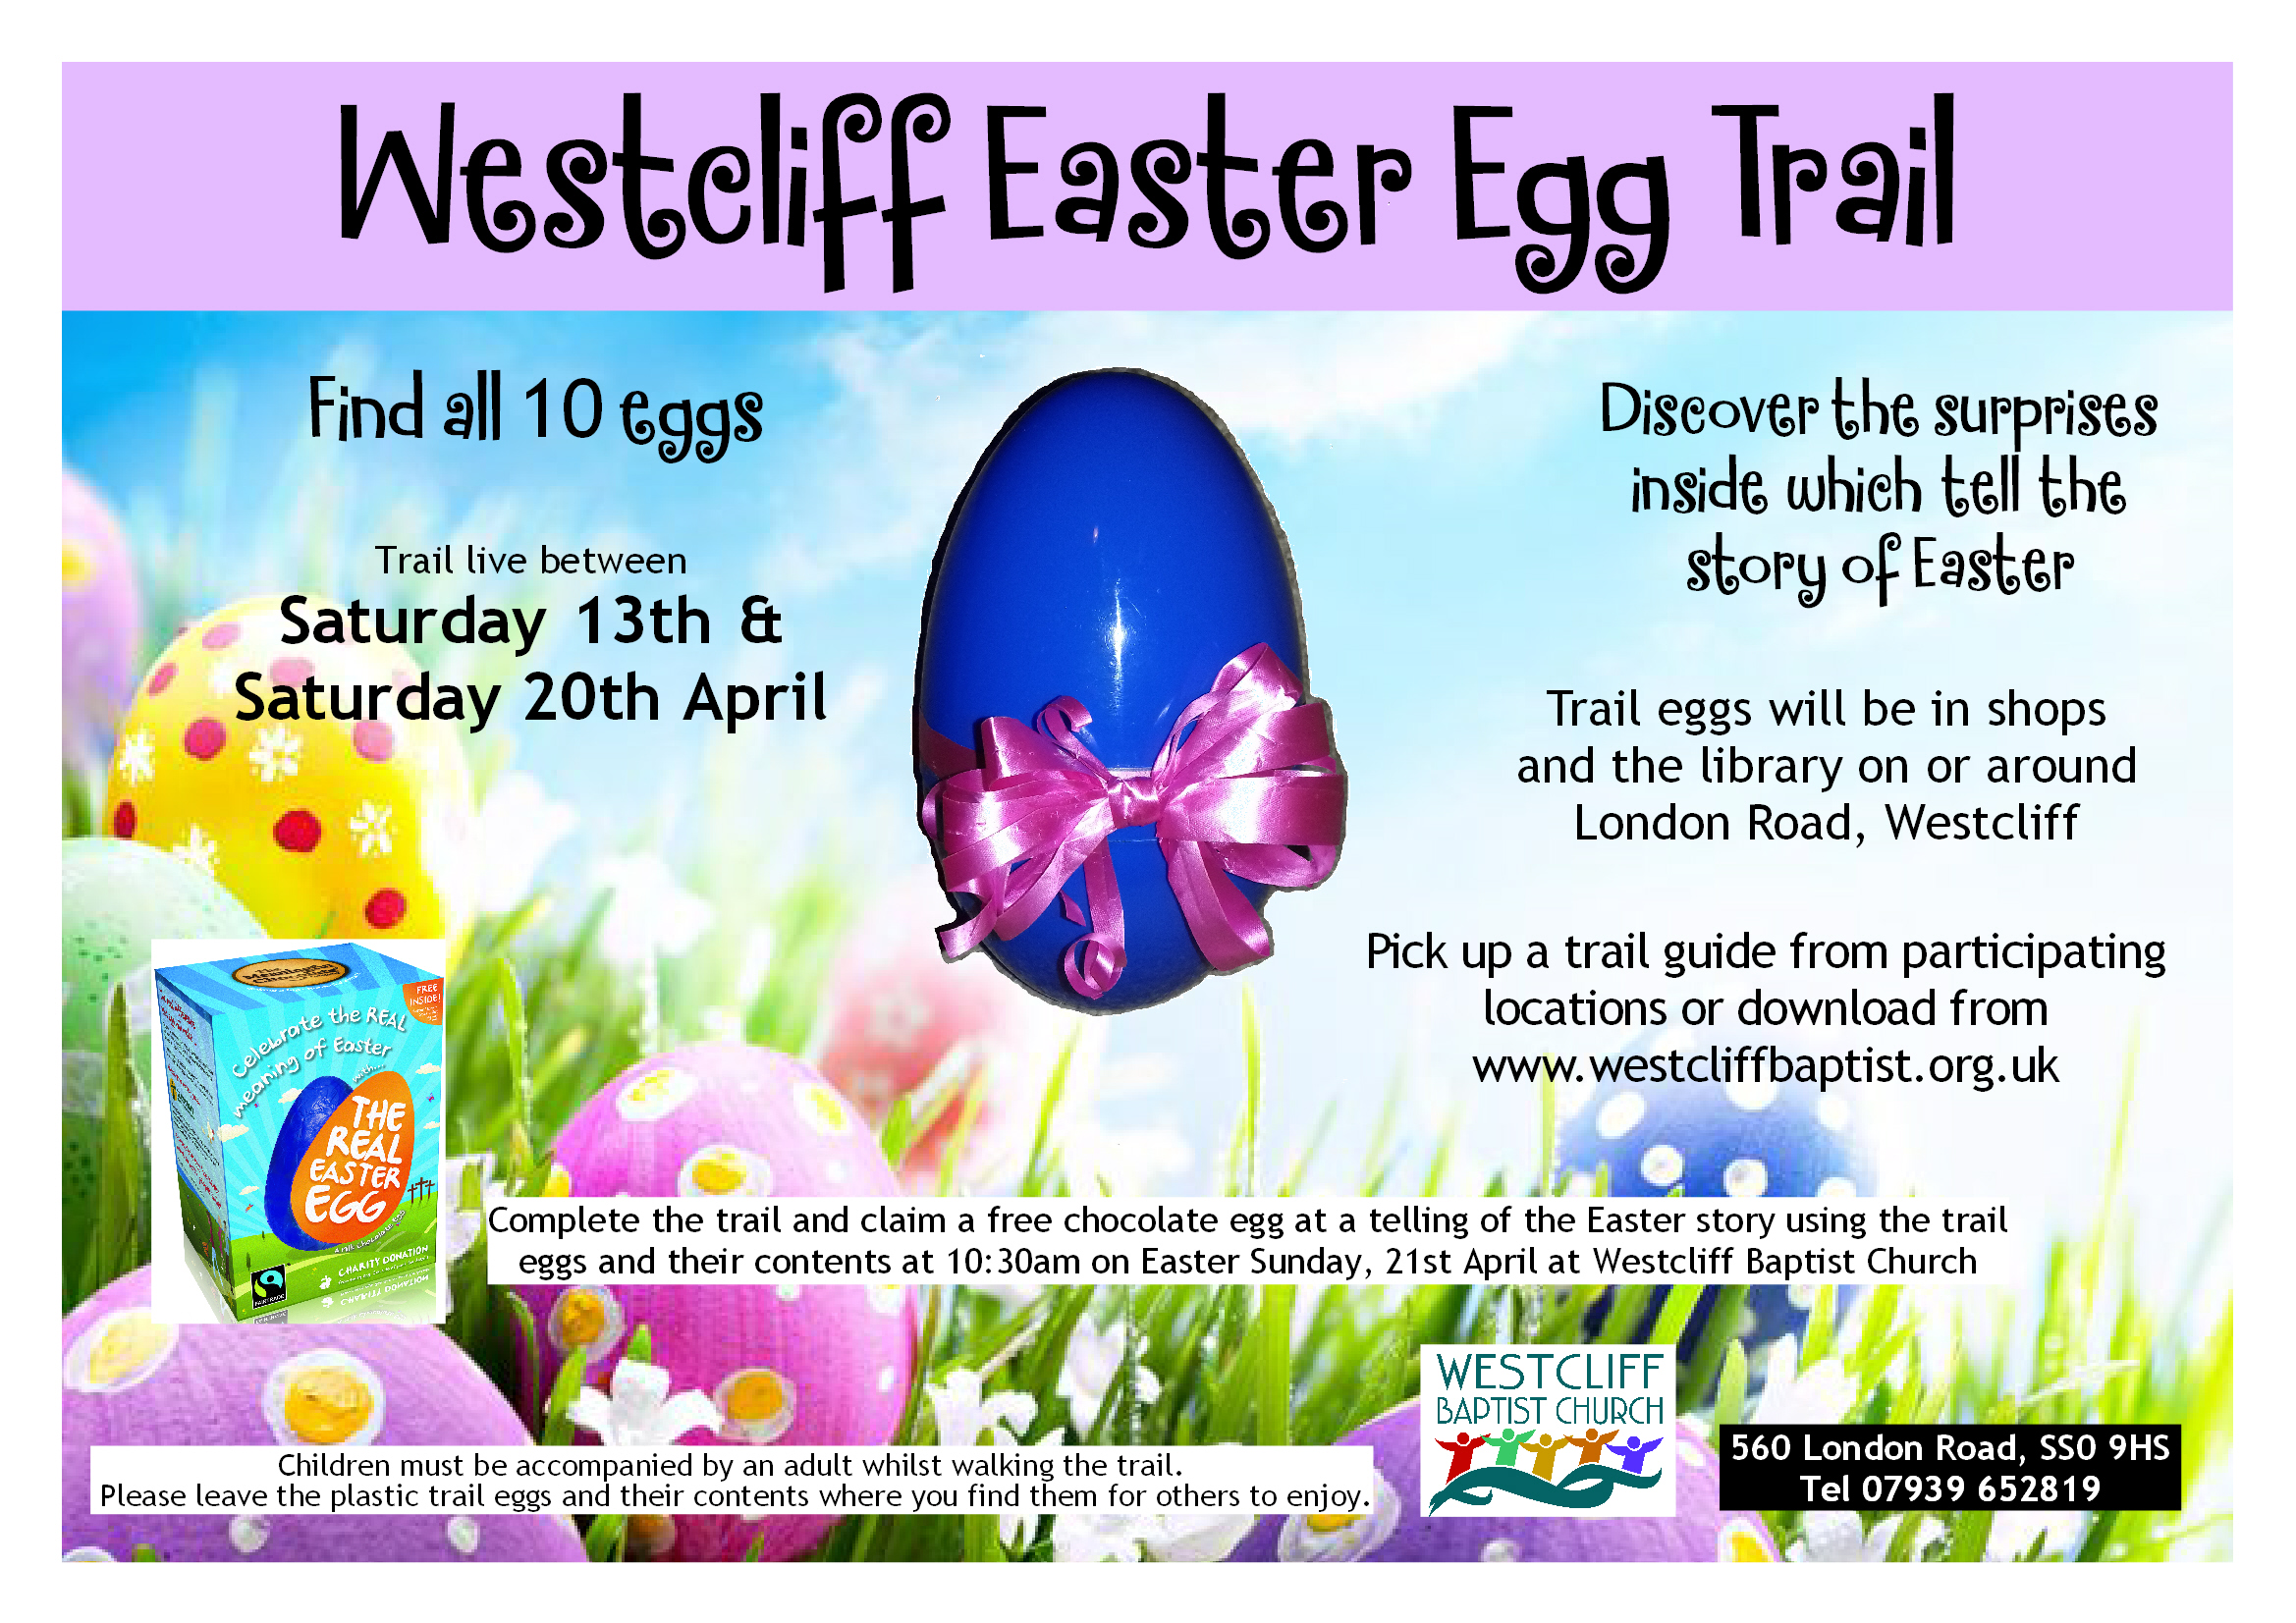 Westcliff Easter Egg Trail